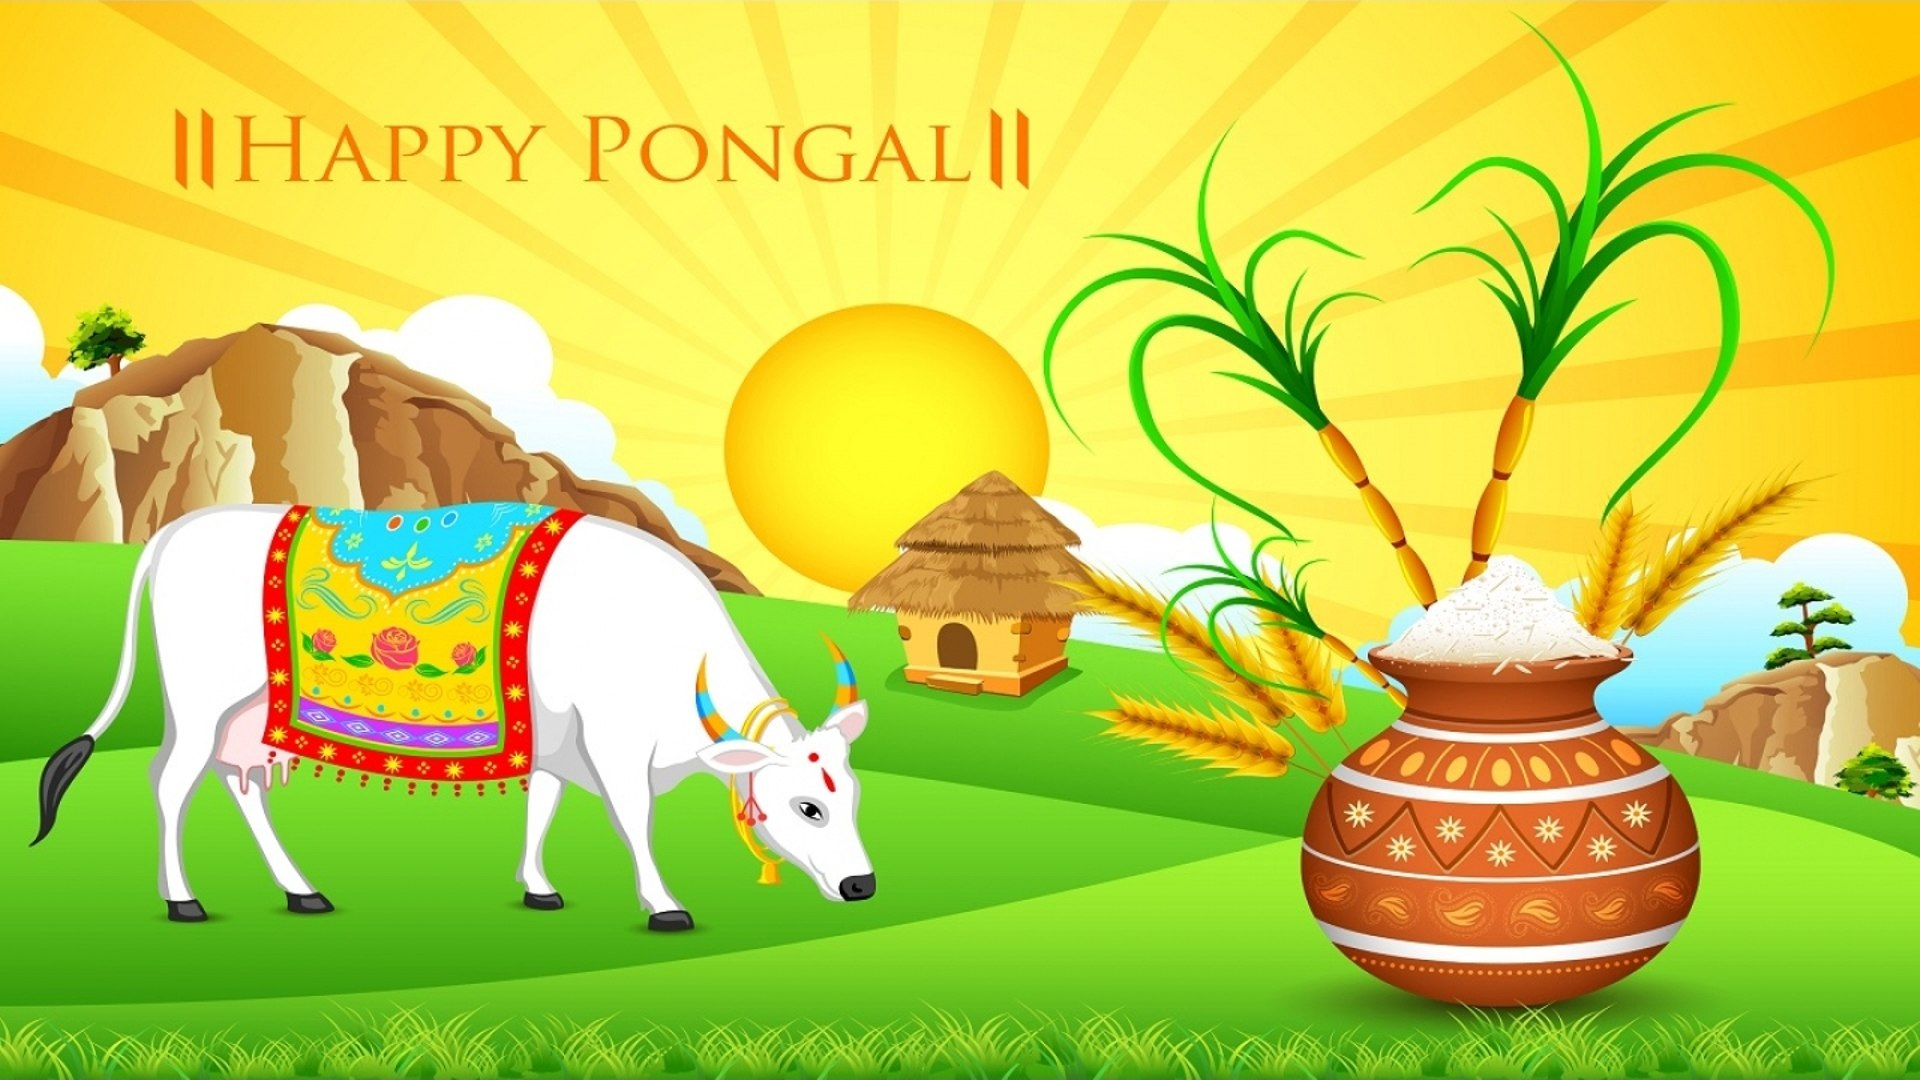 Pongal Festival Images Wallpapers Full Size 1080p